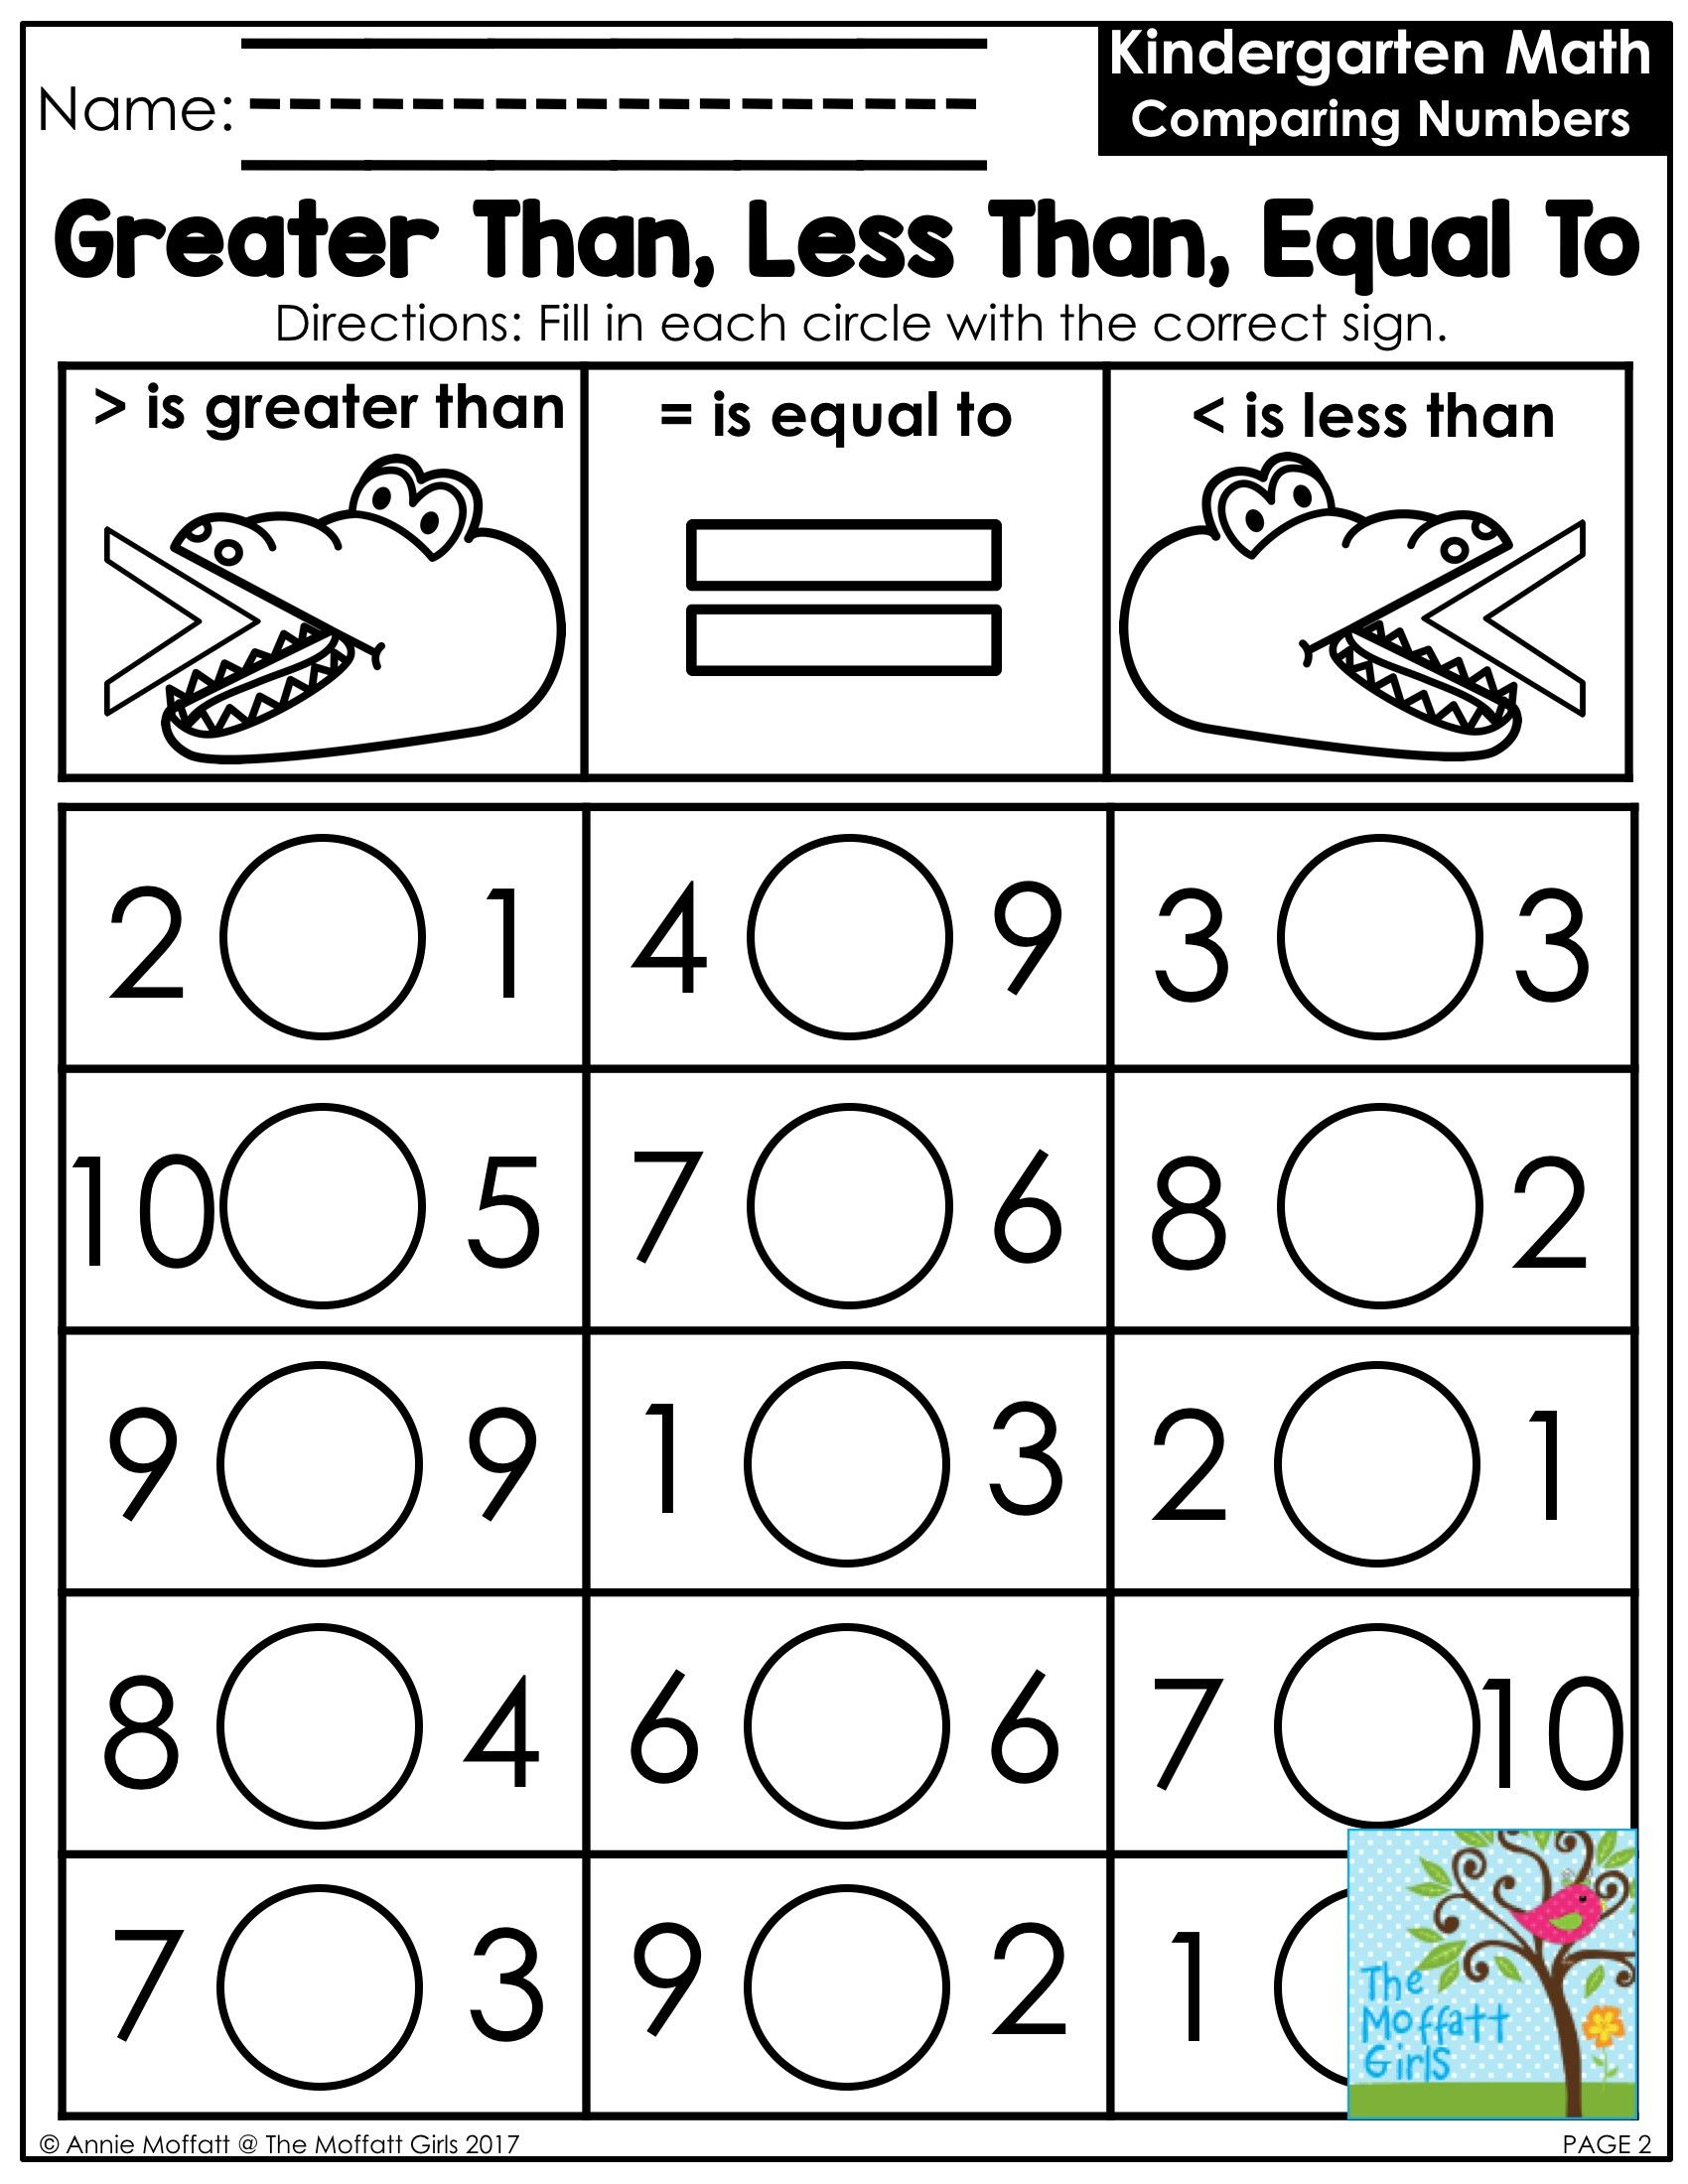 4 Worksheet Free Preschool Kindergarten Worksheets More